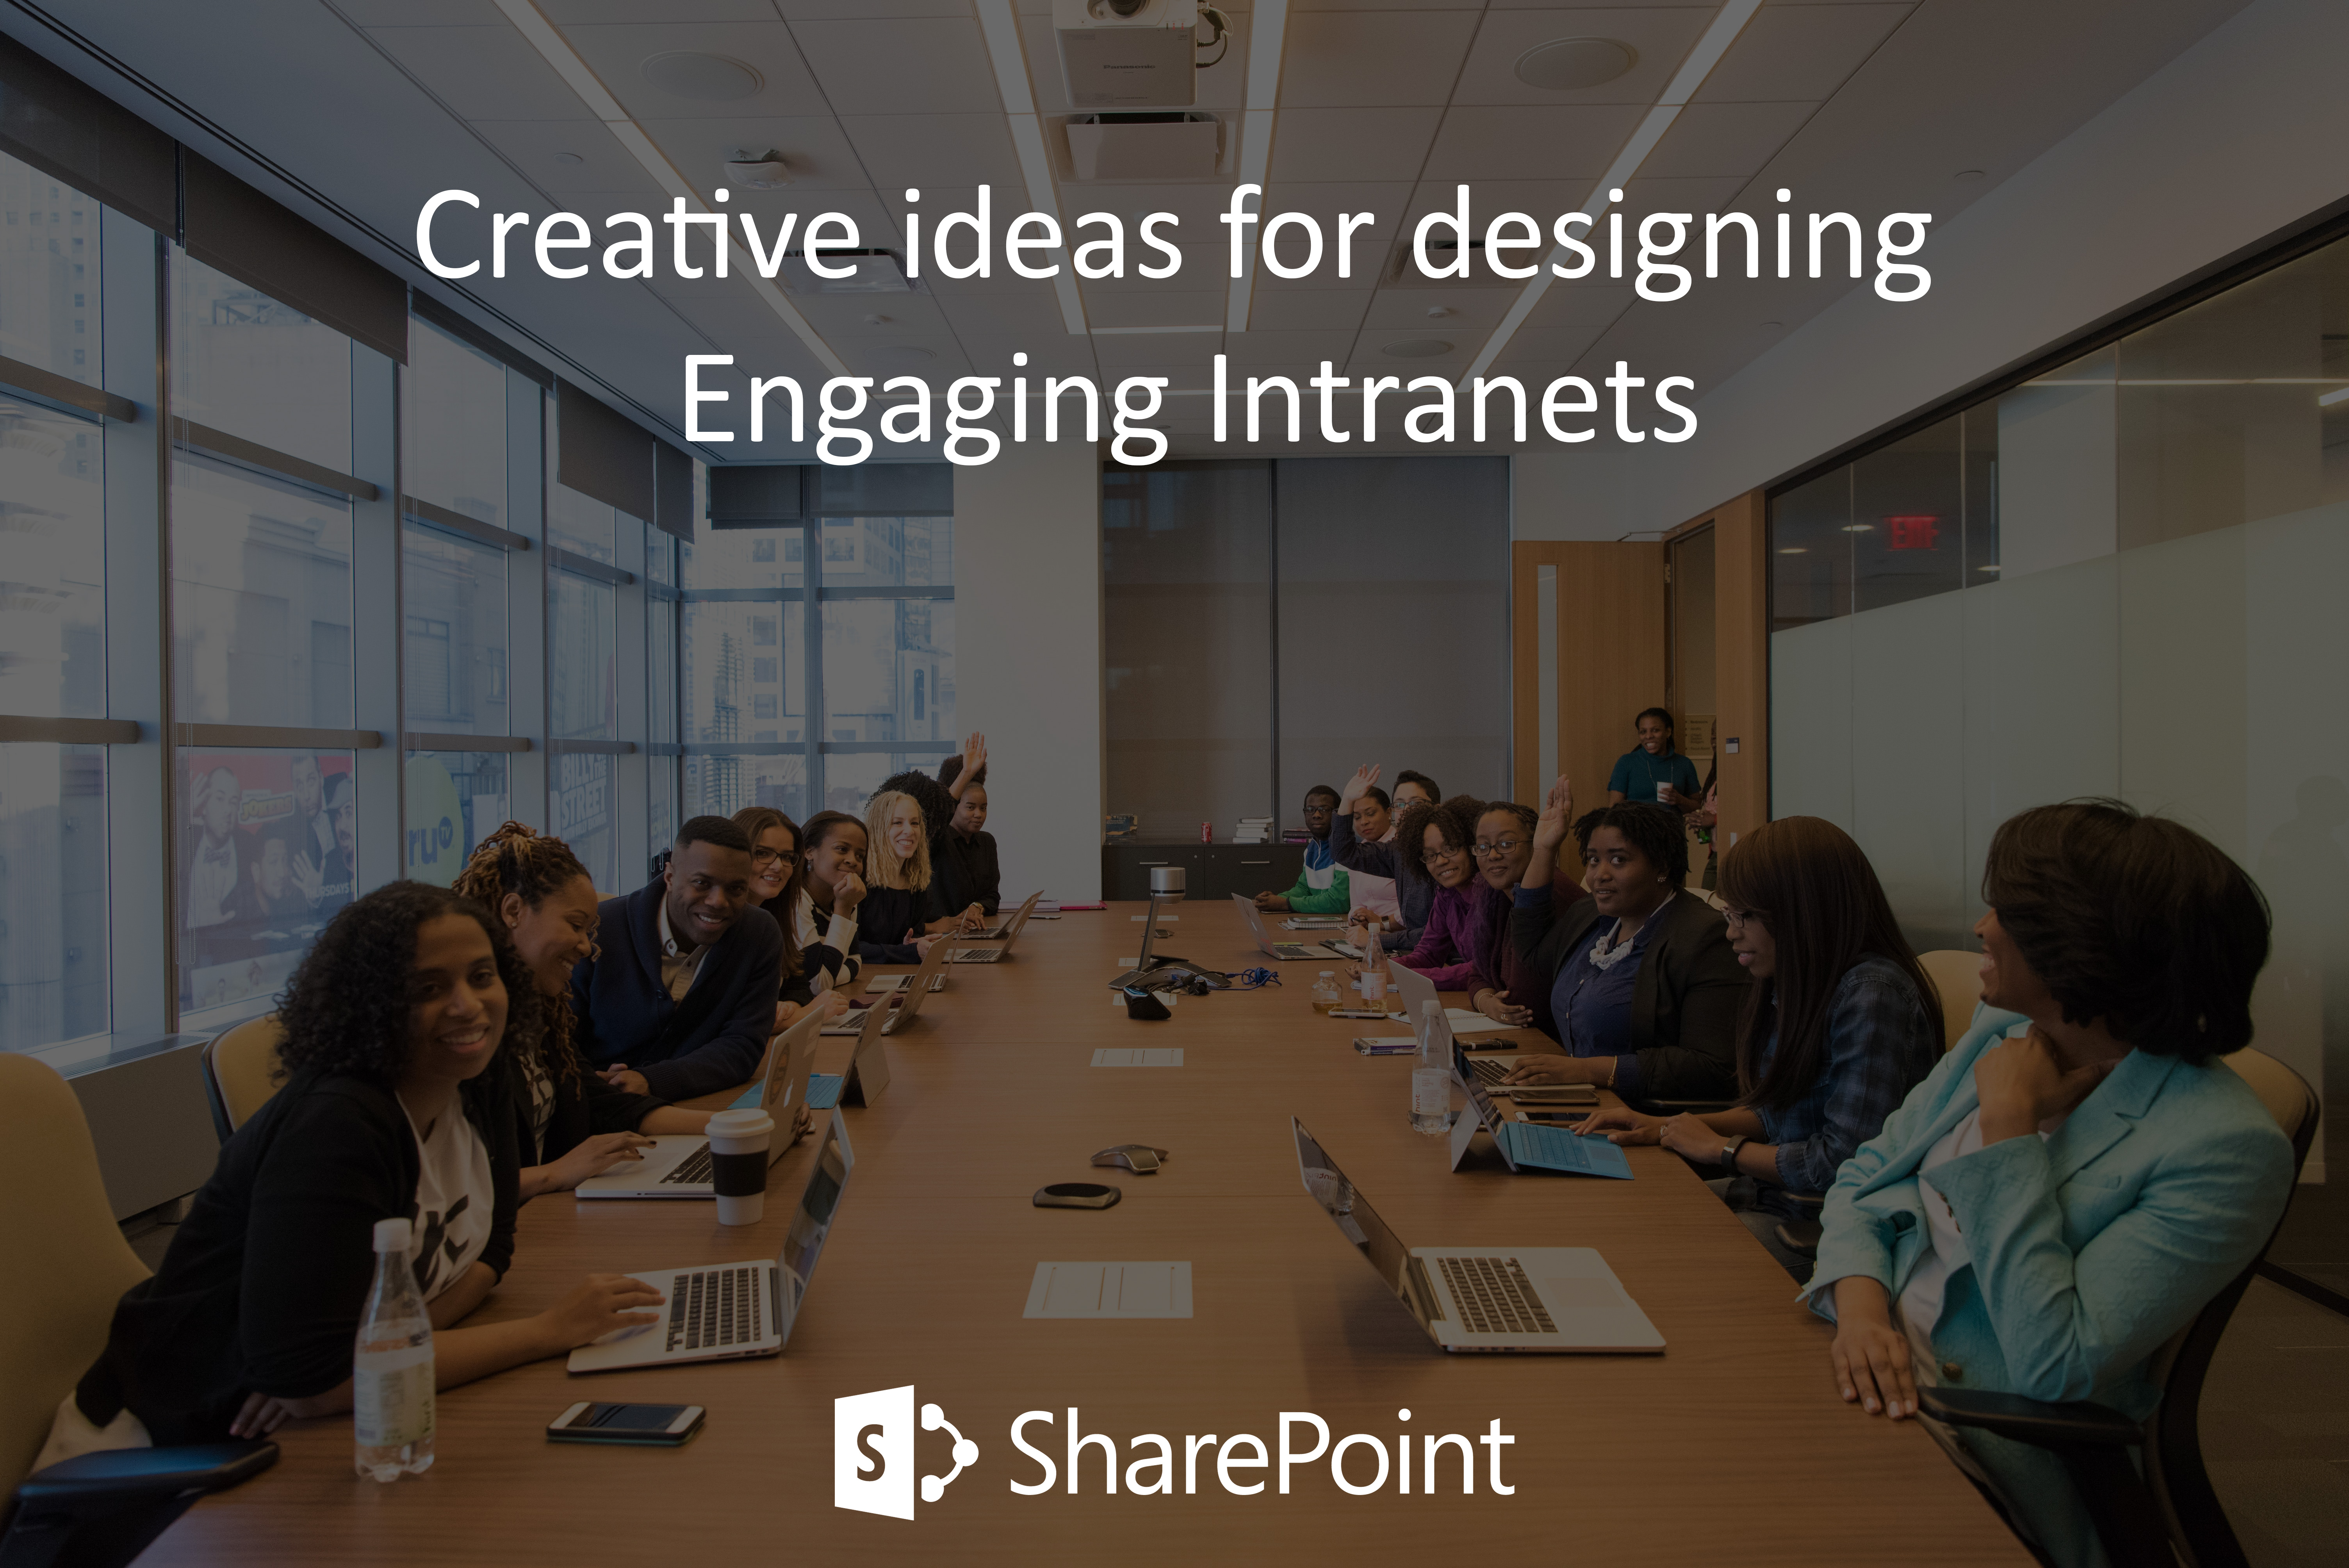 SharePoint Intranet Ideas: Creative Ideas for Designing ...